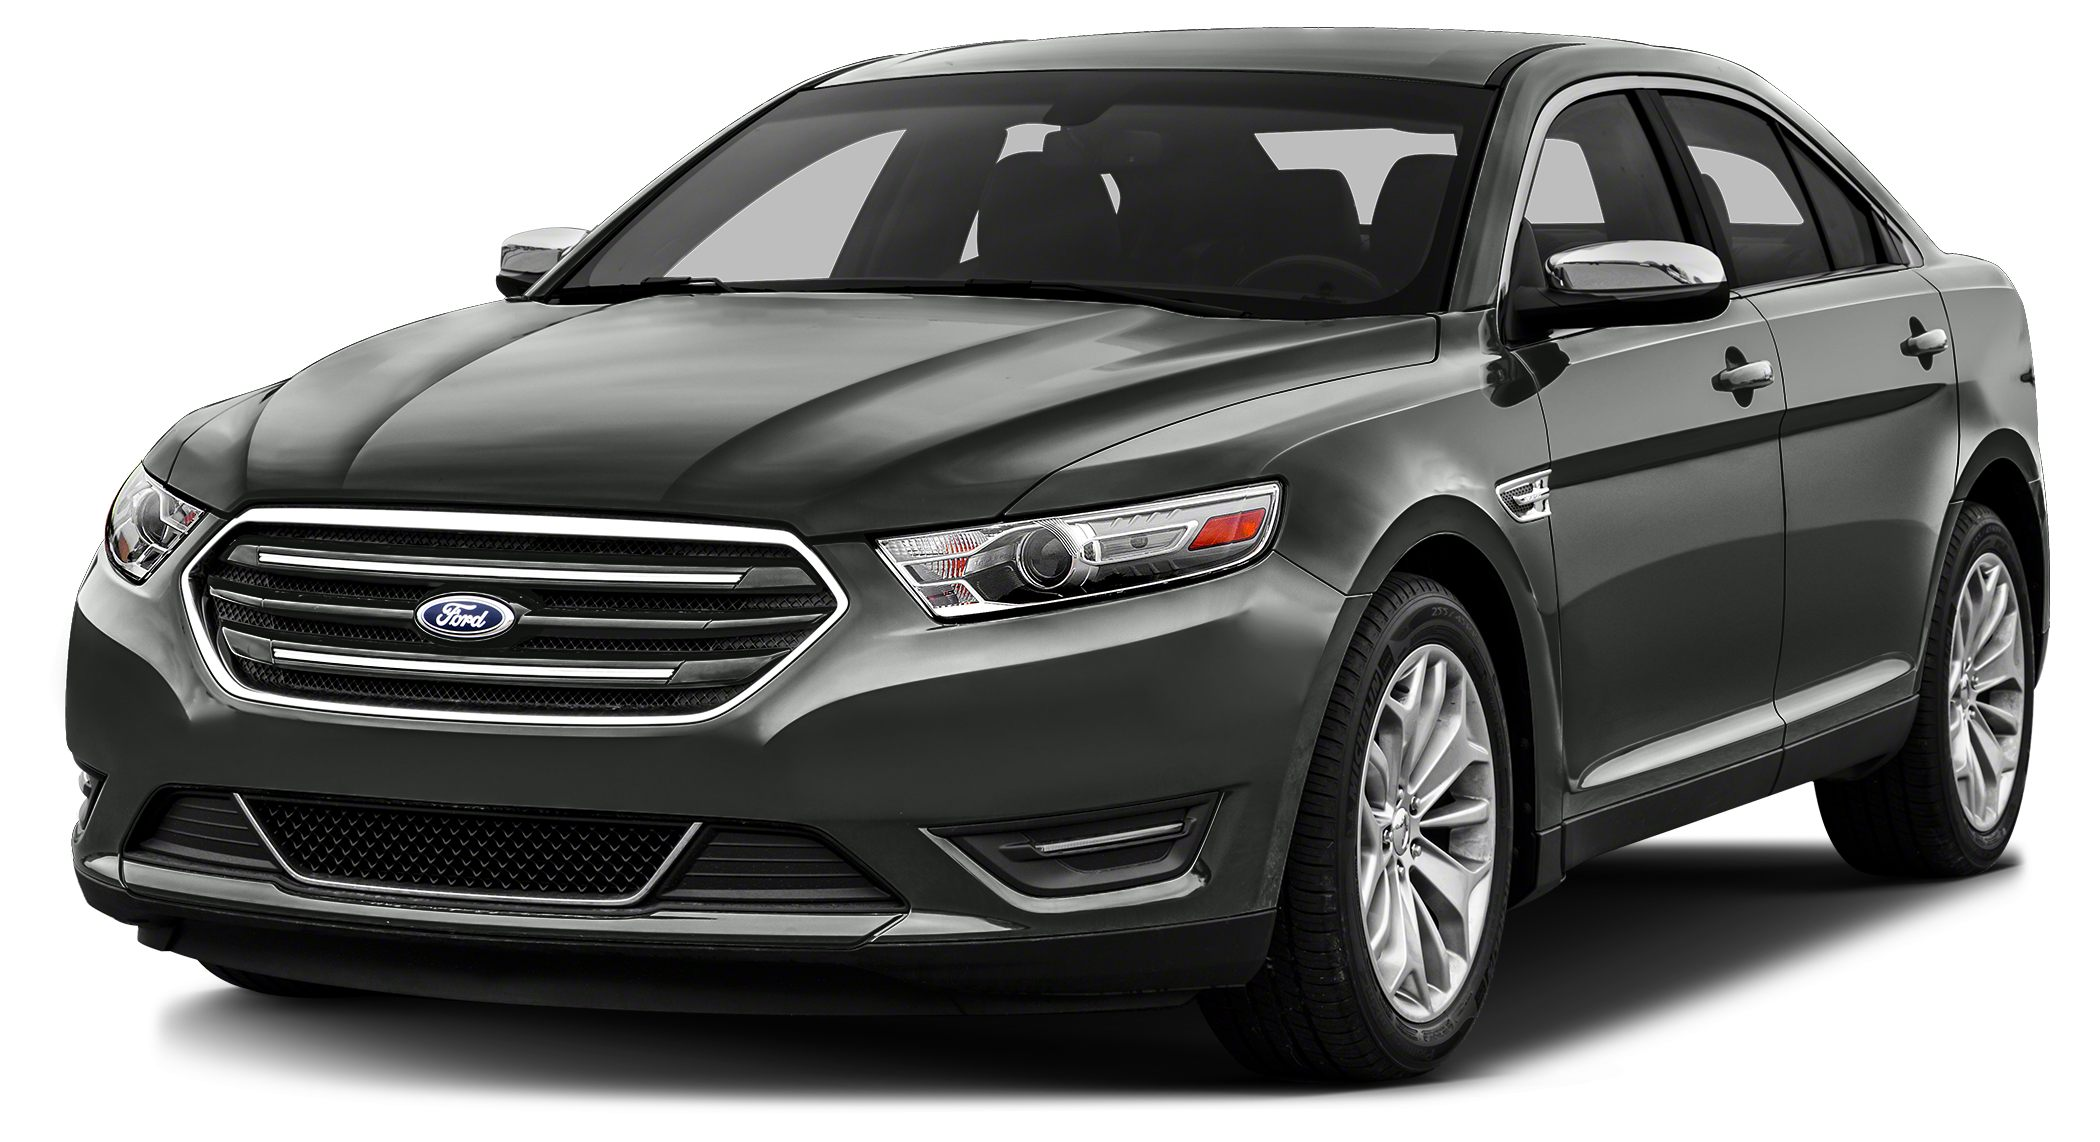 2016 Ford Taurus SEL The Ford Taurus has aggressive front and rear styling that signals a high lev